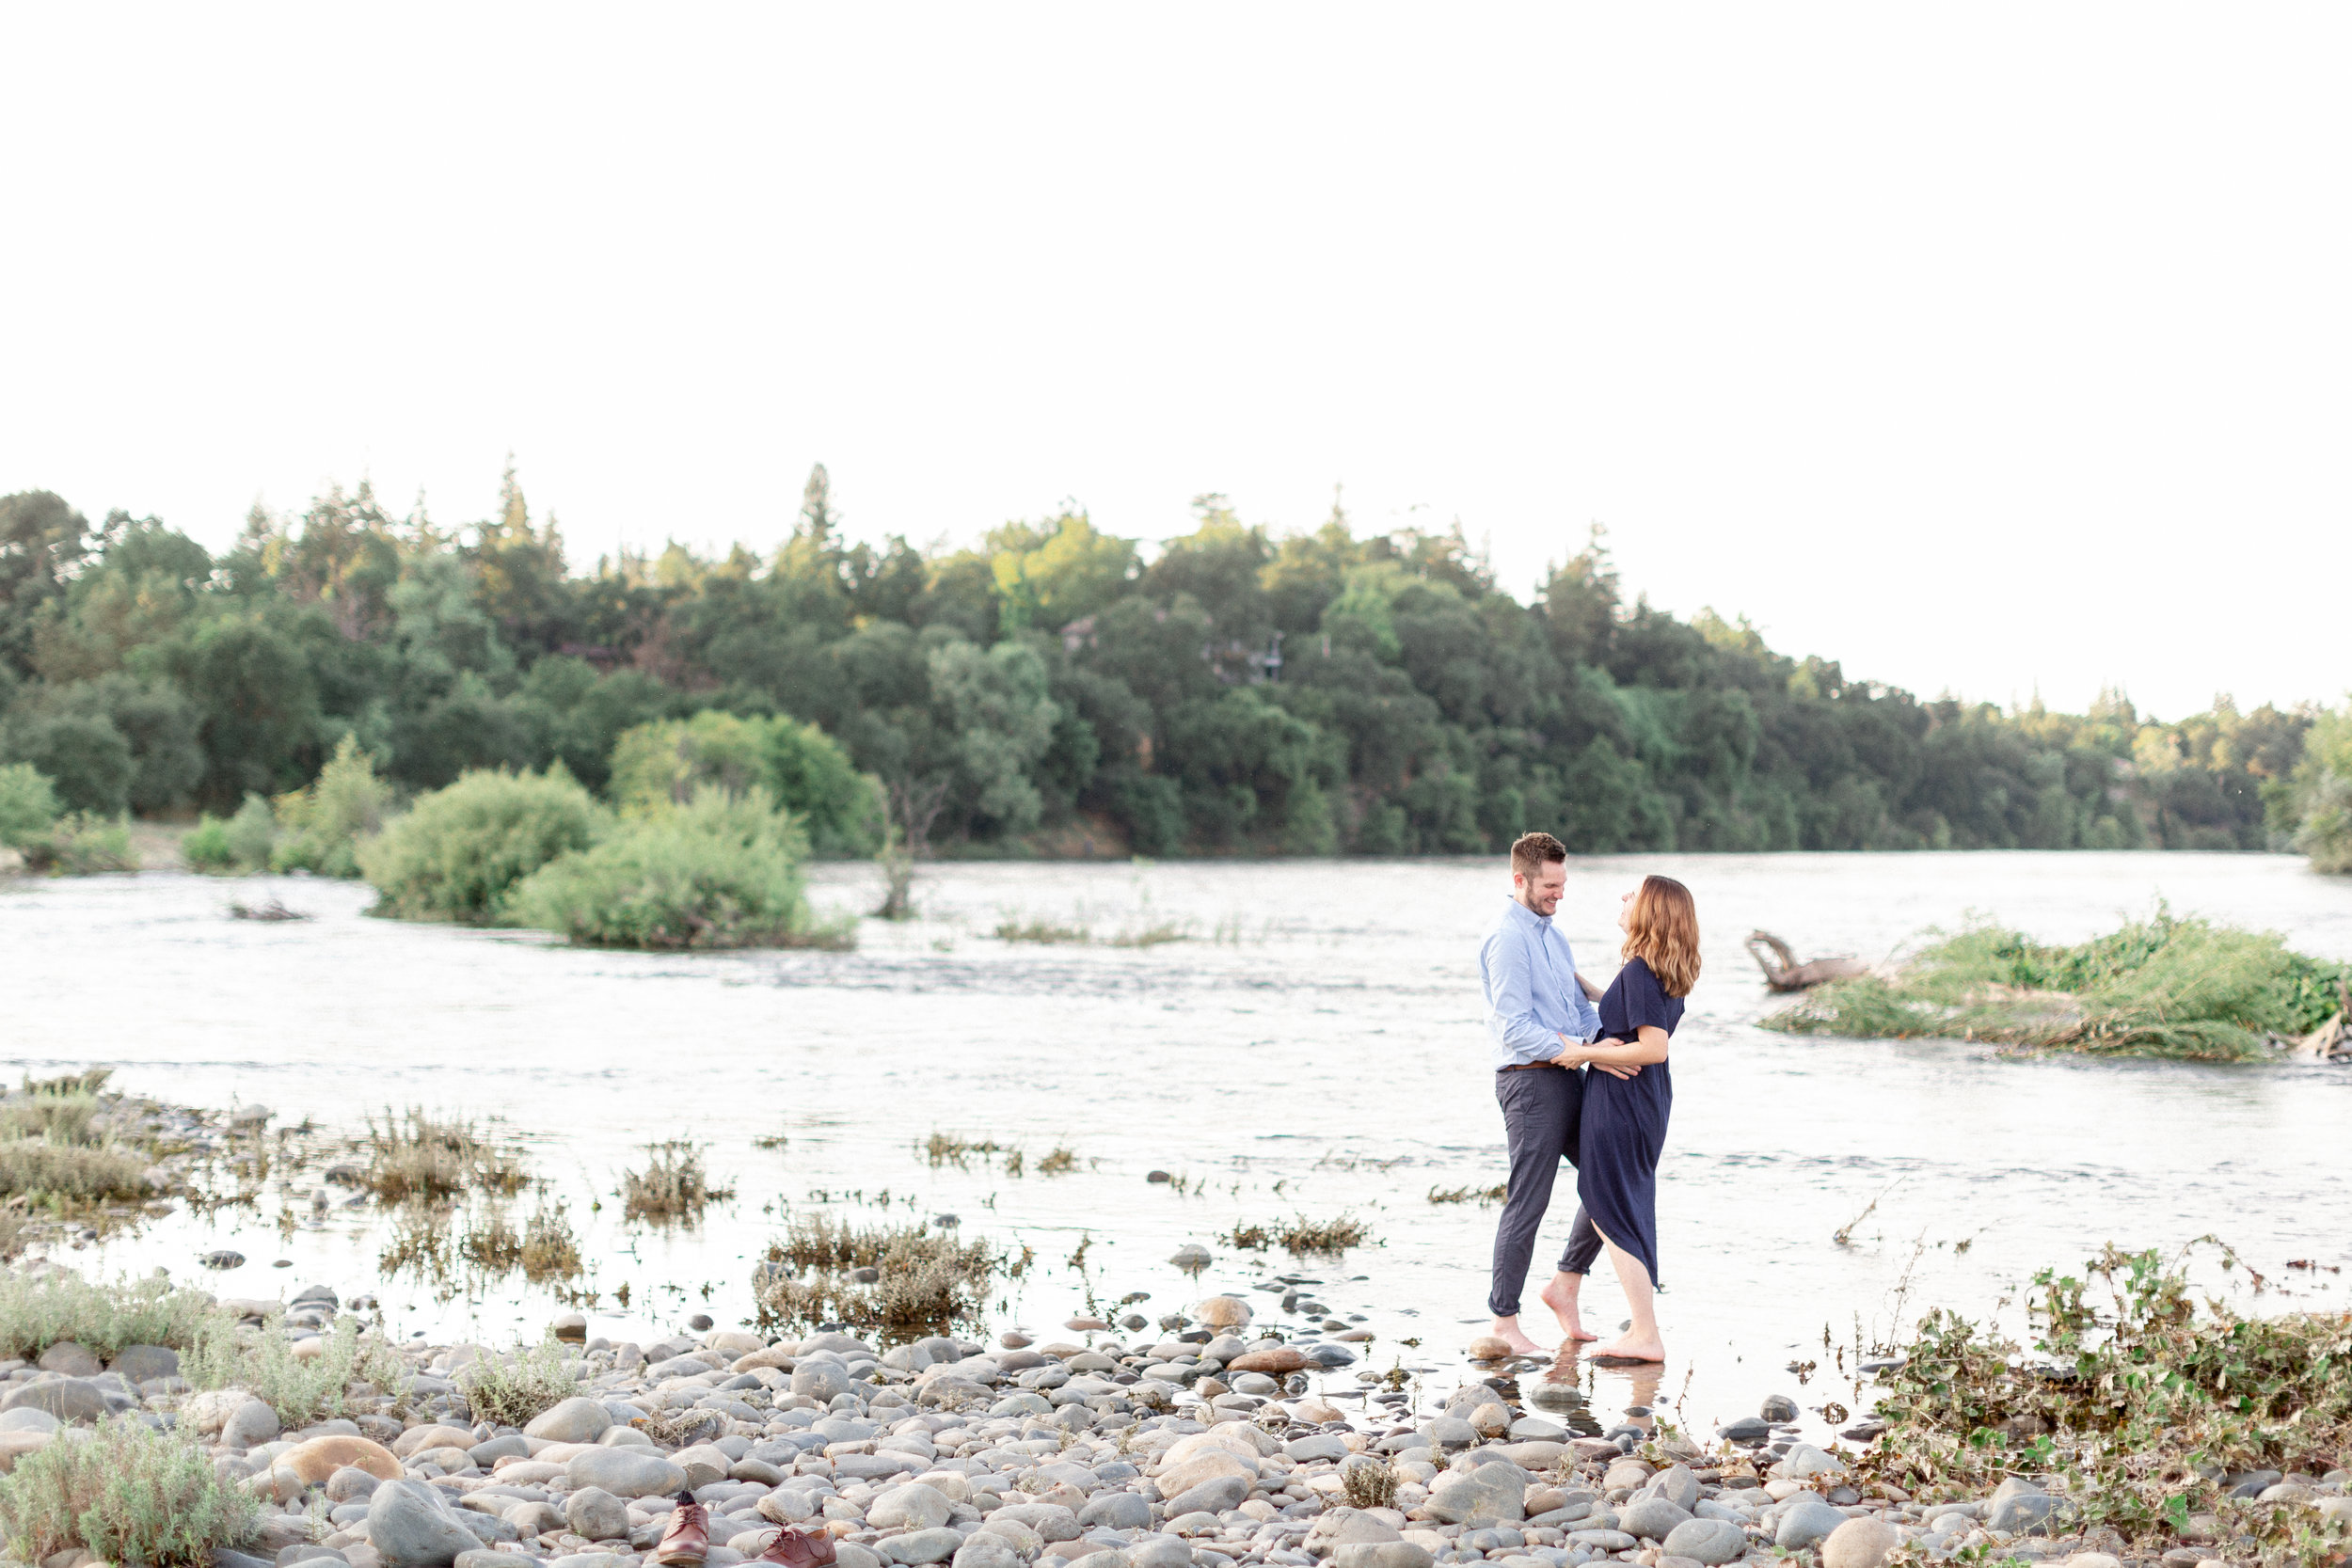 destination-california-photographer-takes-couples-anniversary-photos-near-the-sacrament-river.jpg